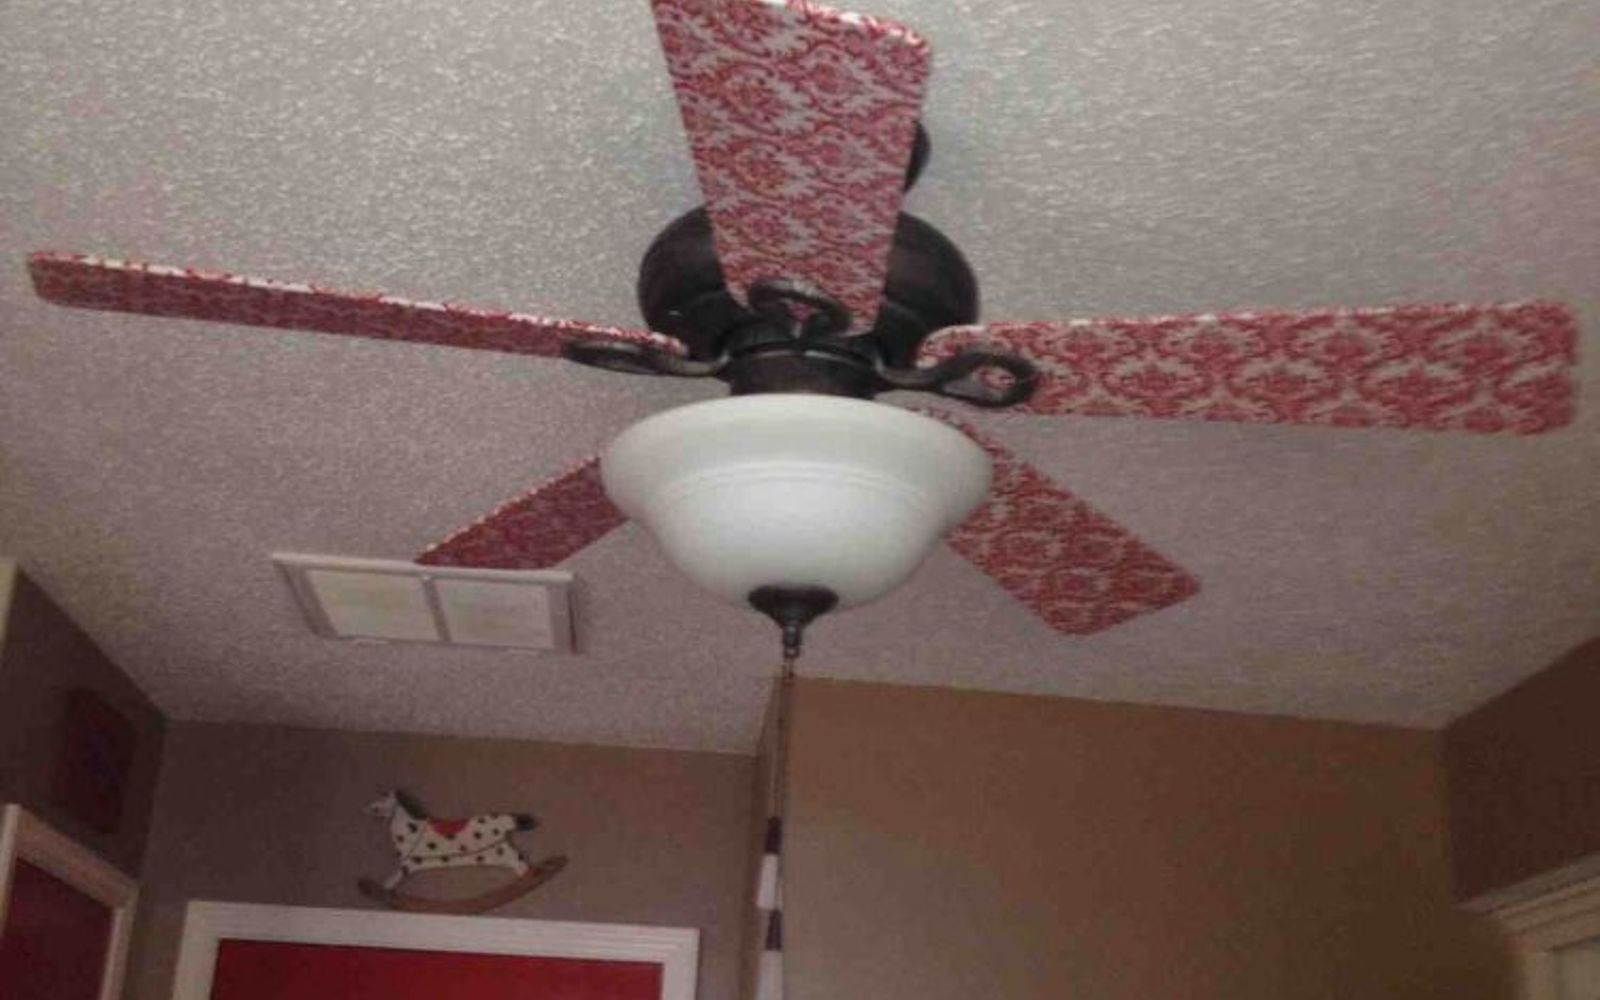 s 13 ways to upgrade your boring ceiling fan on a budget, appliances, wall decor, Use fabric to give old blades a classy touch